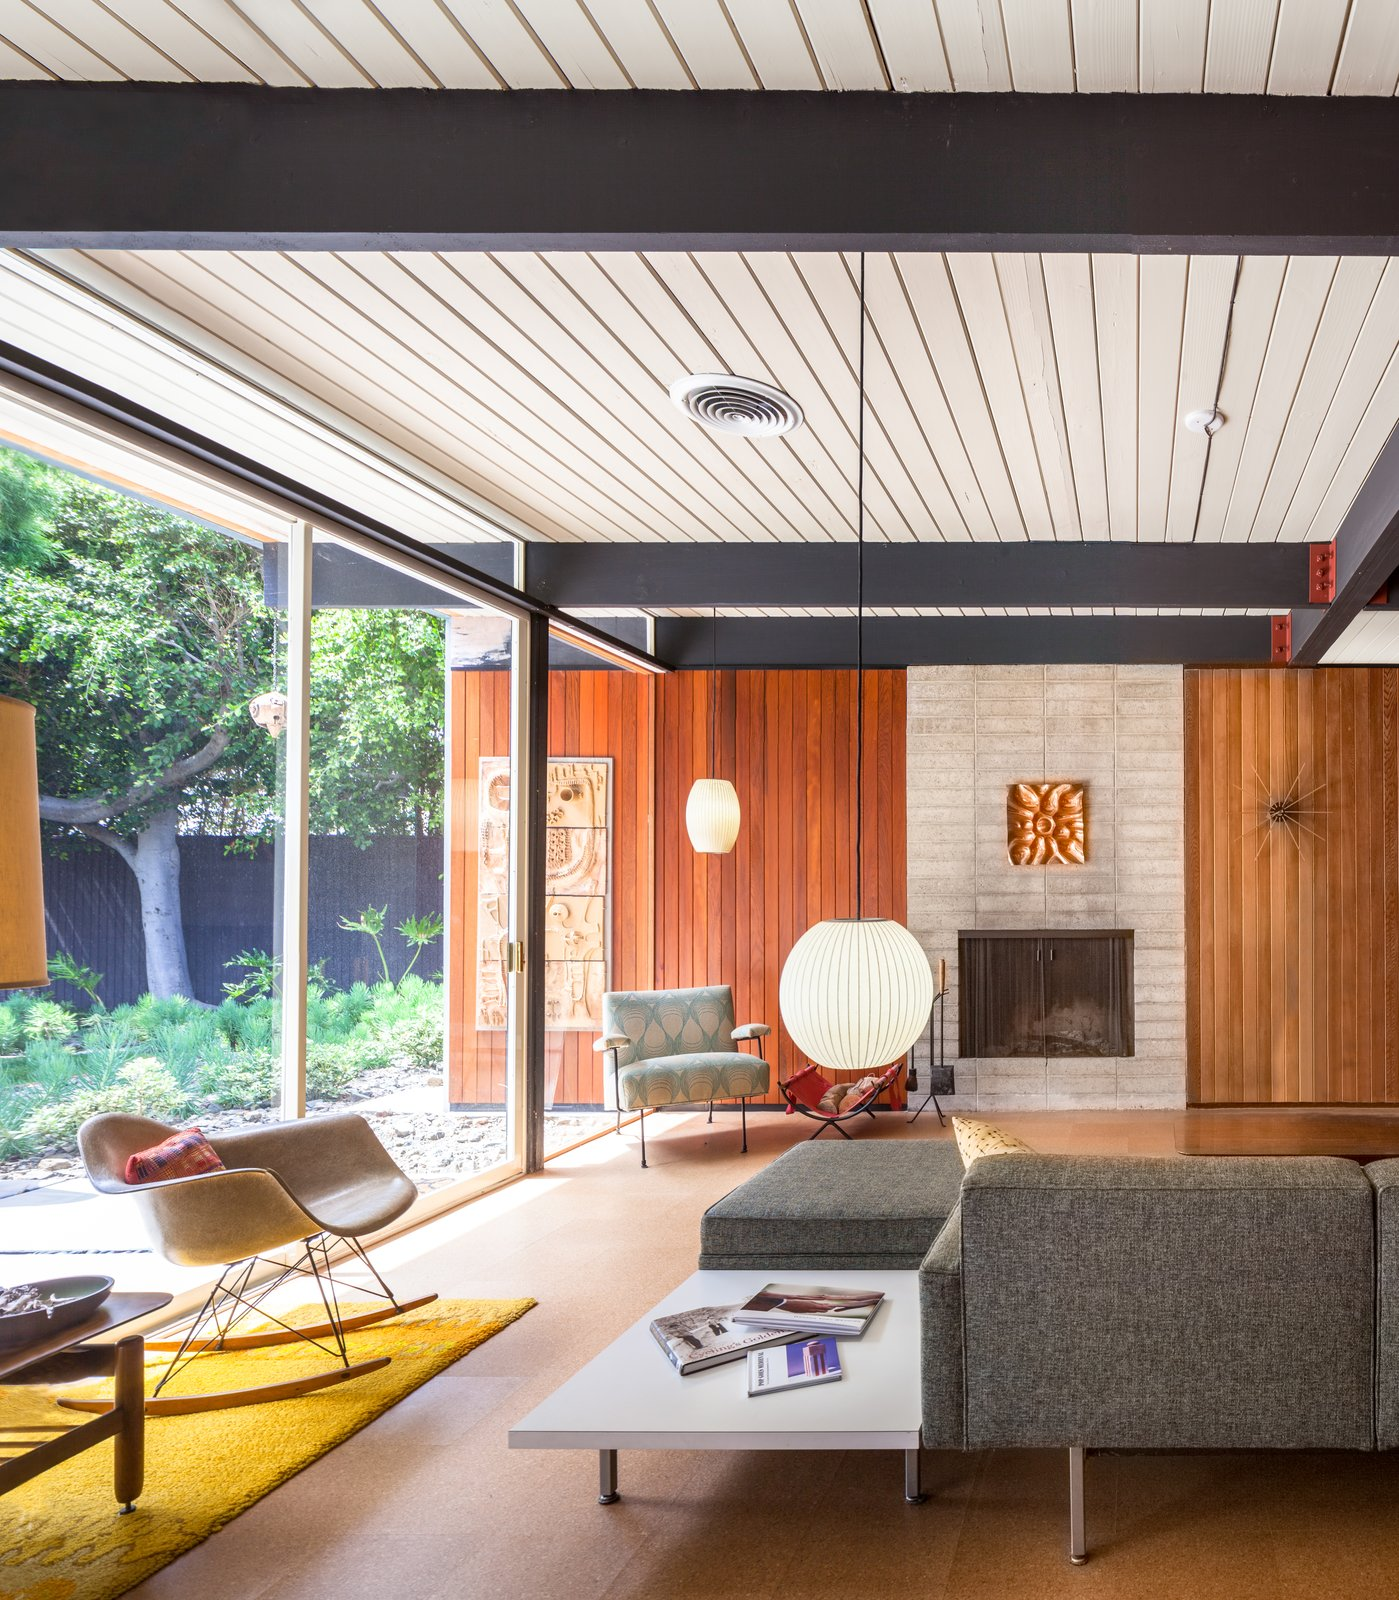 The Bobertz Residence in California by Craig Ellwood is a classic mid century modern residence.